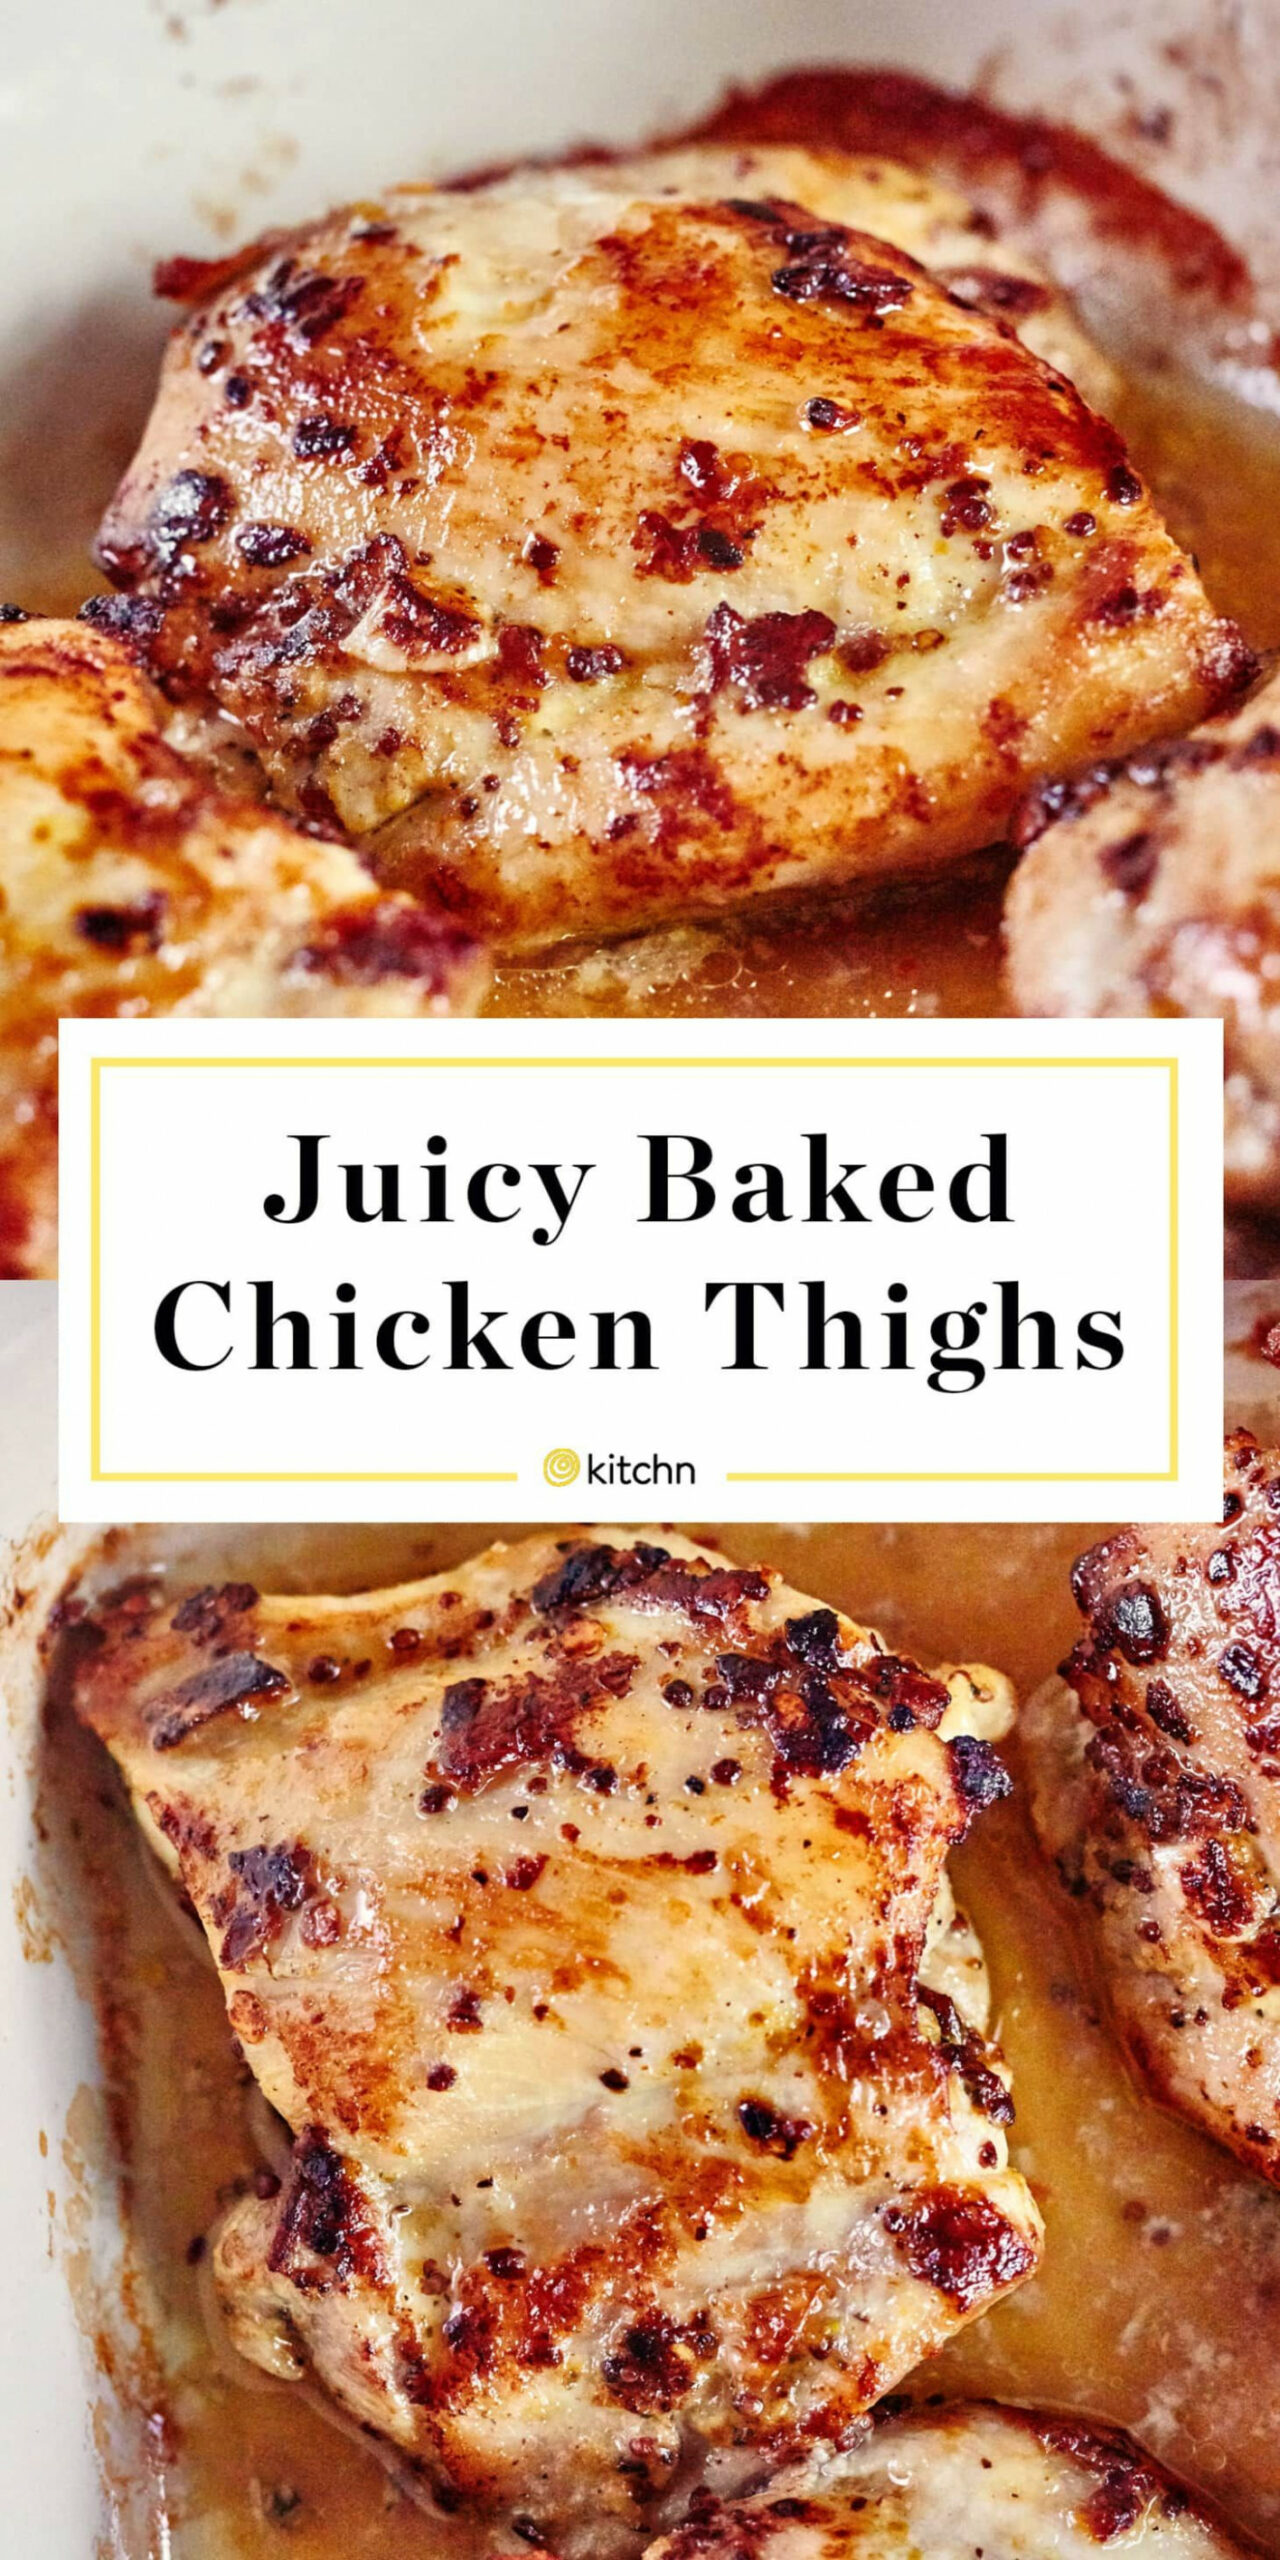 How To Cook Boneless, Skinless Chicken Thighs in the Oven - recipes boneless chicken thighs